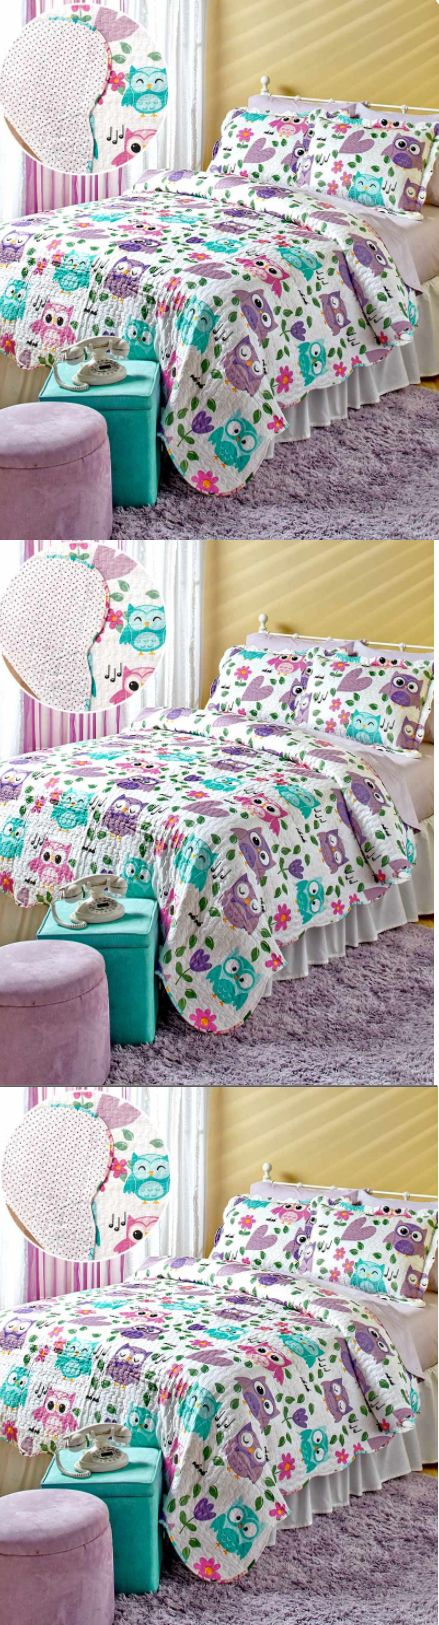 Kids at Home: Bedding Sets Twin Girls Quilt And Bedspreads Kids Reversible Purple Owls Teens -> BUY IT NOW ONLY: $39.99 on eBay!